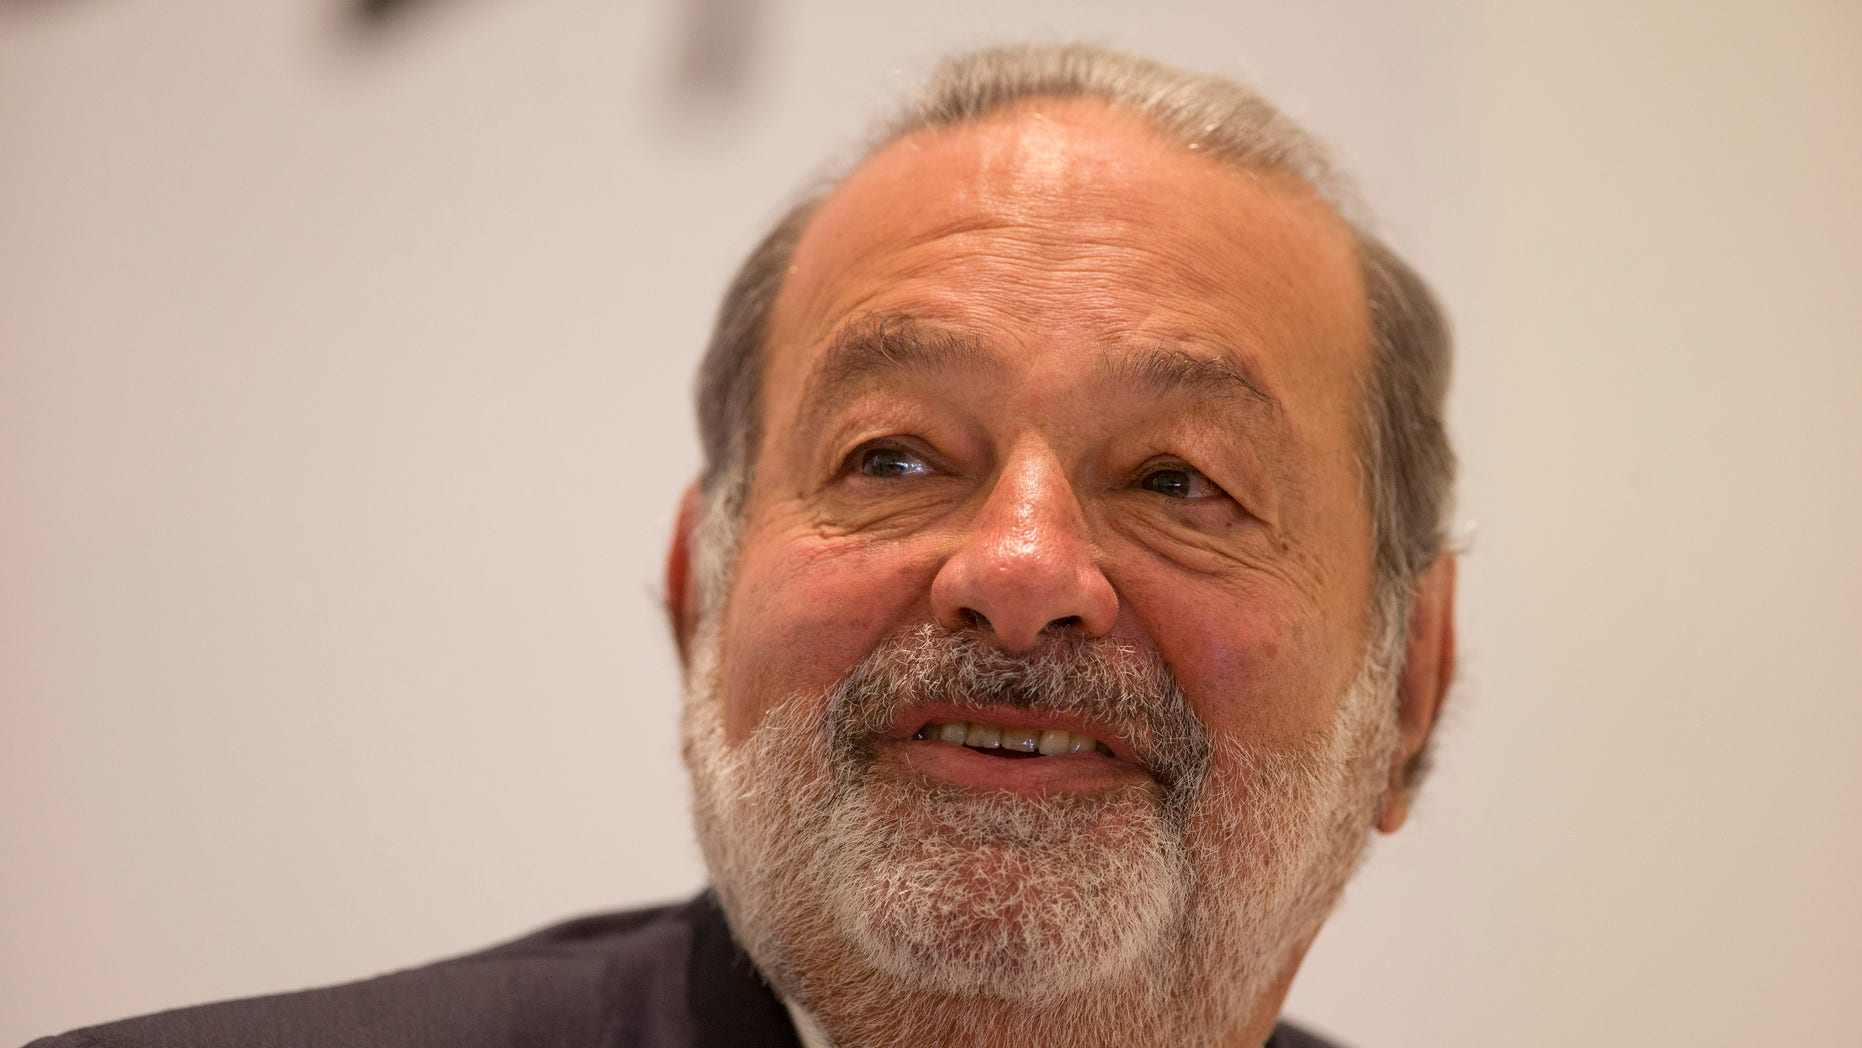 FILE - In this Jan. 14, 2013 file photo, Mexican telecommunications tycoon Carlos Slim speaks during news conference at the Soumaya museum in Mexico City. Slim recently bought part of two of Mexico's first division soccer teams, setting up another showdown with television giants Televisa and TV Azteca, major players in the soccer field that are in turn trying to push their way into Slim's telecommunications and Internet markets. (AP Photo/Dario Lopez-Mills, File)